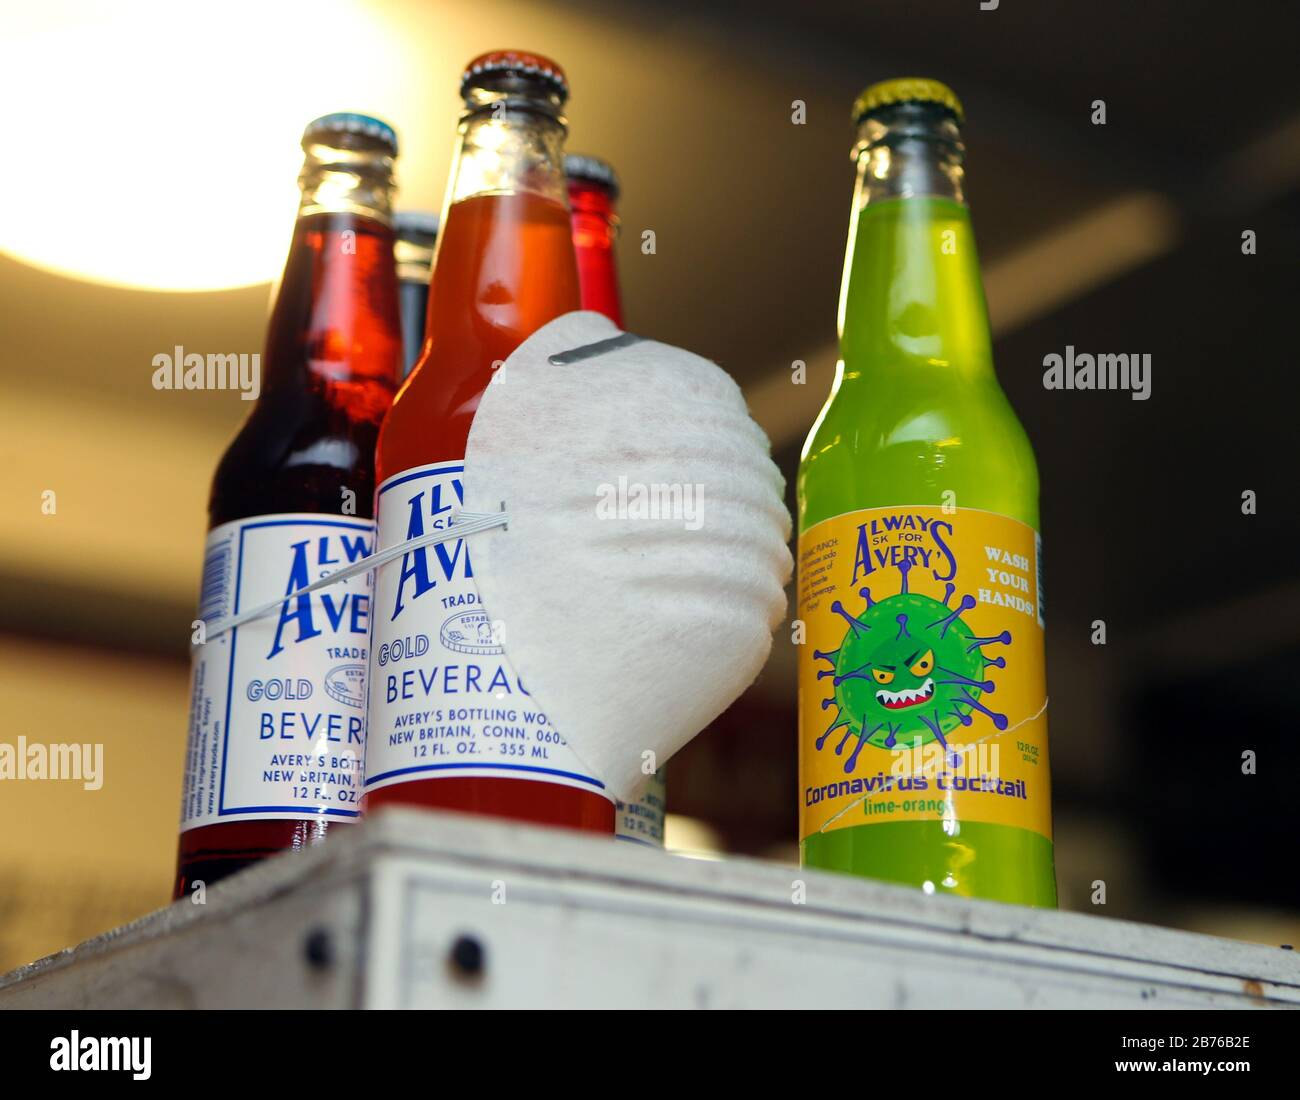 March 13, 2020, New Britain, CT, USA: Avery Beverges has been in business since 1904, and makes soda in more than 35 flavors. Their latest flavor is Coronavirus Cocktail. They also produce a line of Totally Gross Sodas like Bug Barf, Toxic Slime, Monster Mucus and Zombie Brain Juice. Avery also makes limited edition sodas relating to things in the news, such as So Long Osama, Deflated Ball Brew relating to the National Football League, and more recently Peach-Mint Soda featuring Donald Trump on the label. Credit: ZUMA Press, Inc./Alamy Live News Stock Photo